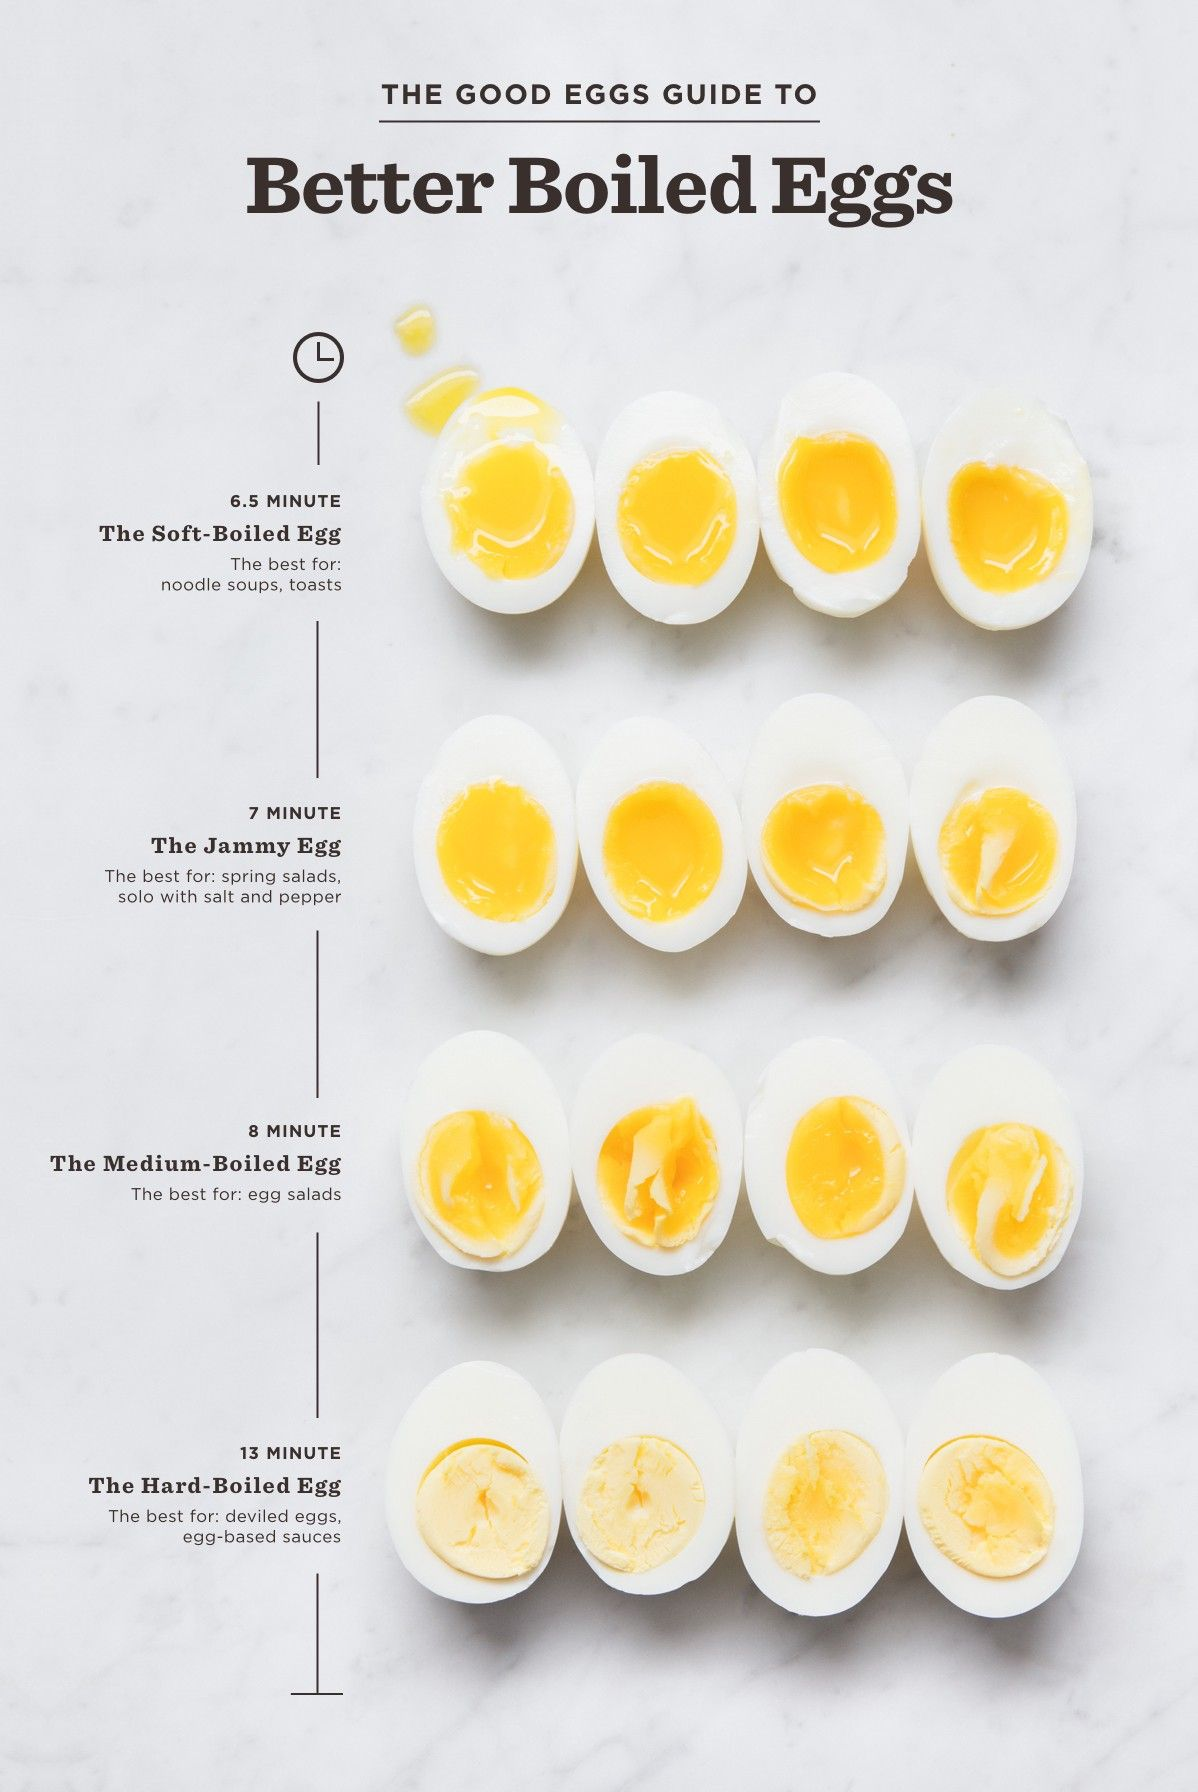 The Best Boiling Times for Eggs | Scratchpad by Good Eggs